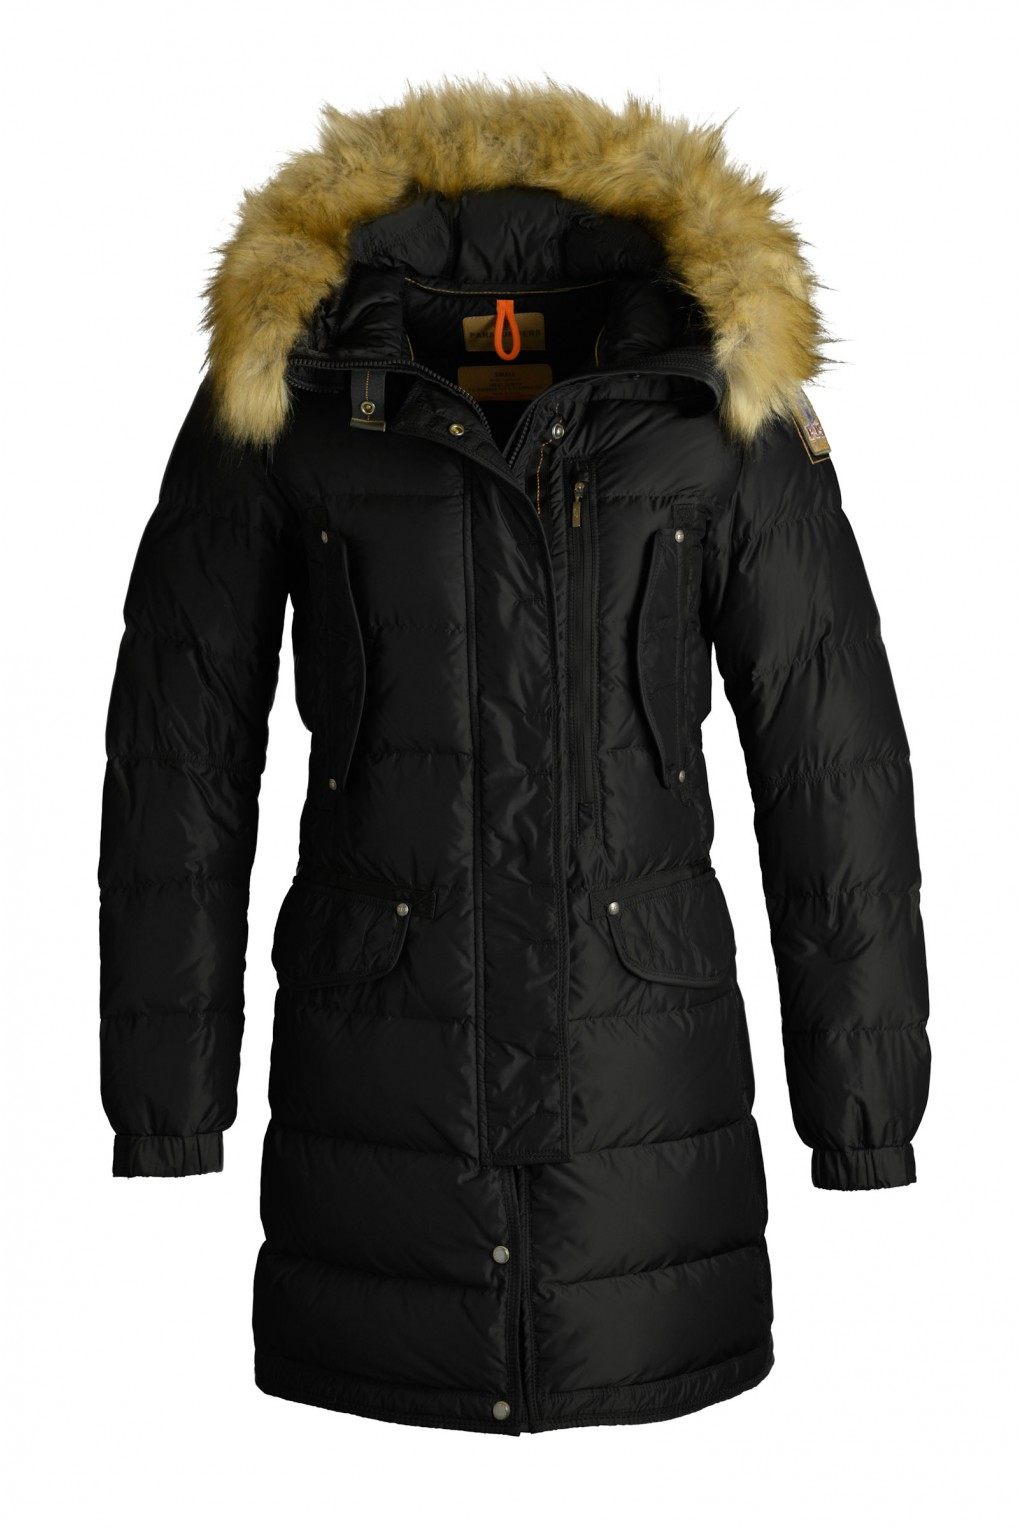 parajumpers HARRASEEKET ECO woman outerwear Black